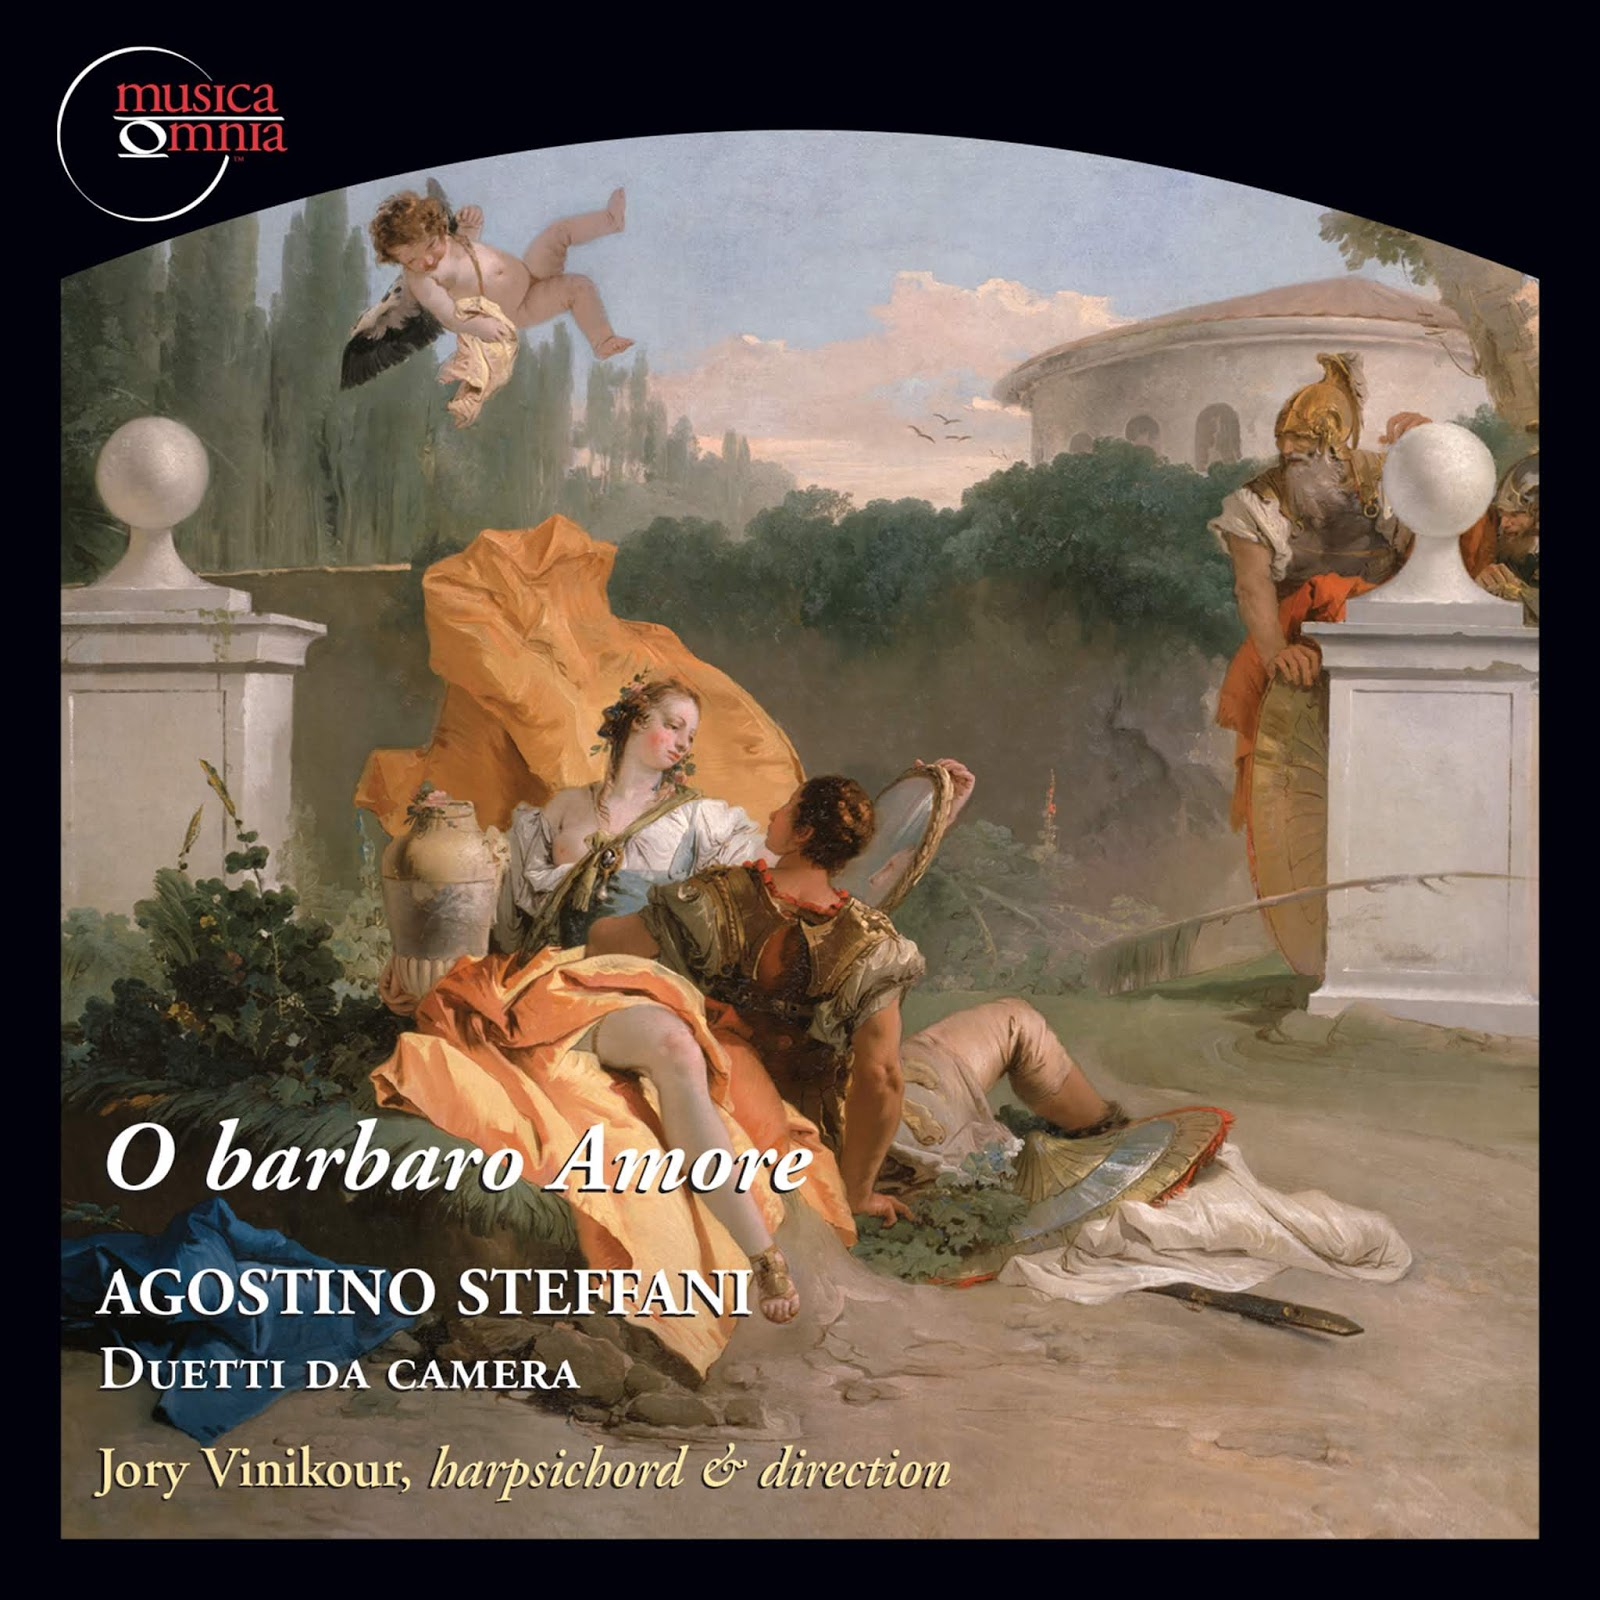 July 2018 RECORDING OF THE MONTH: Agostino Steffani - O BARBARO AMORE (Musica Omnia mo0711)